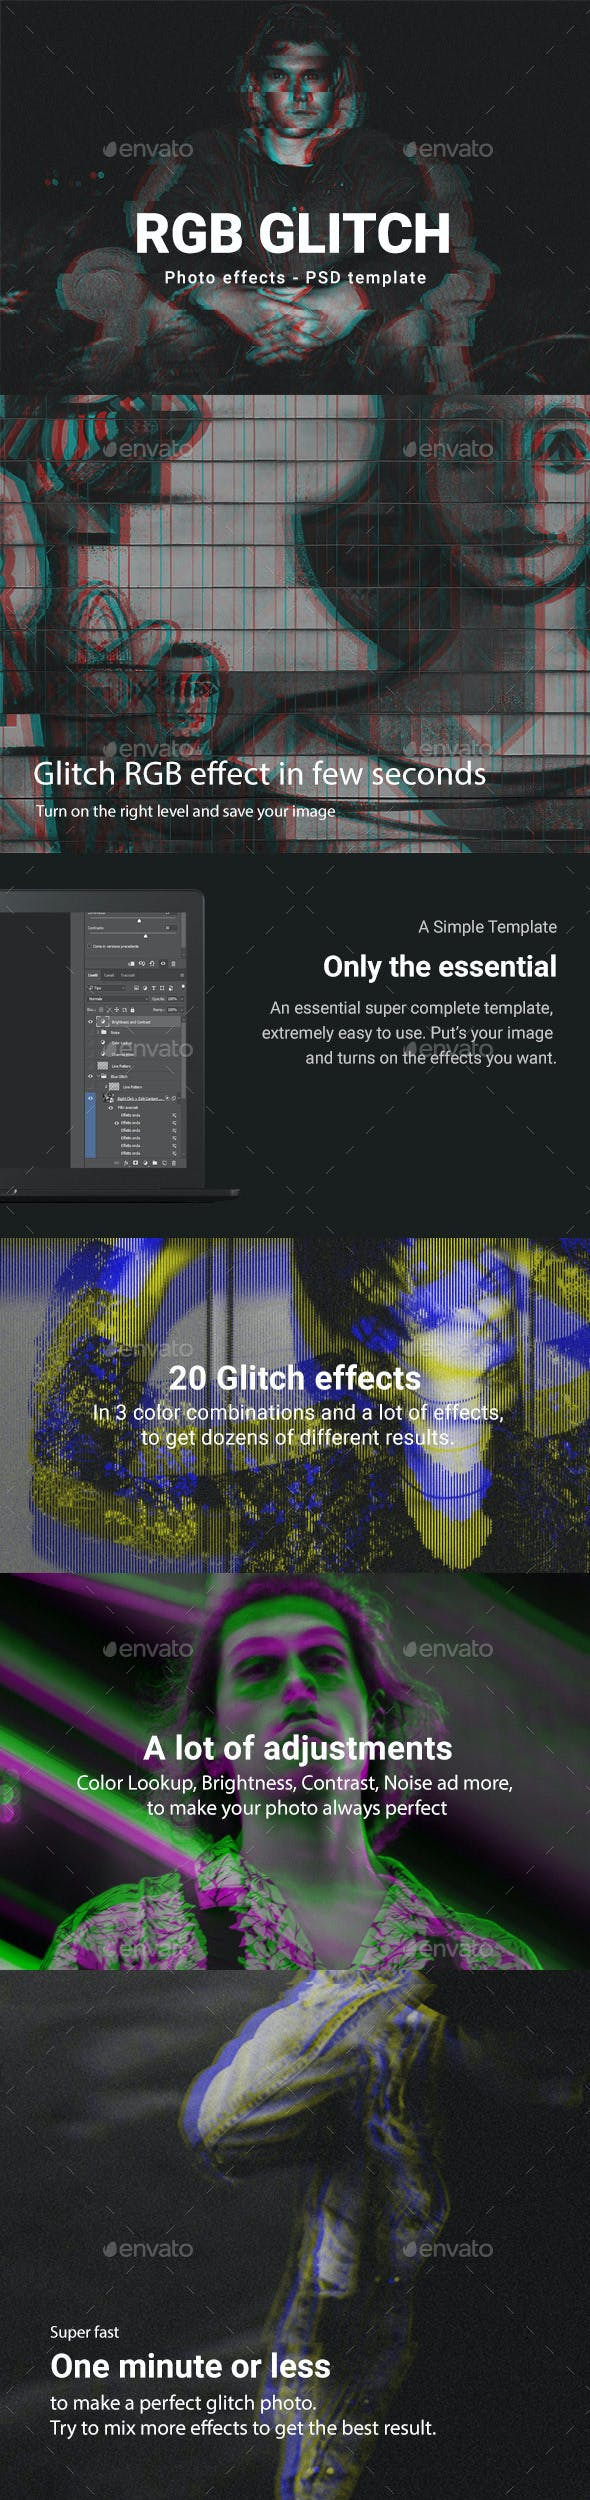 rgb glitch photoshop template by ragestudio graphicriver